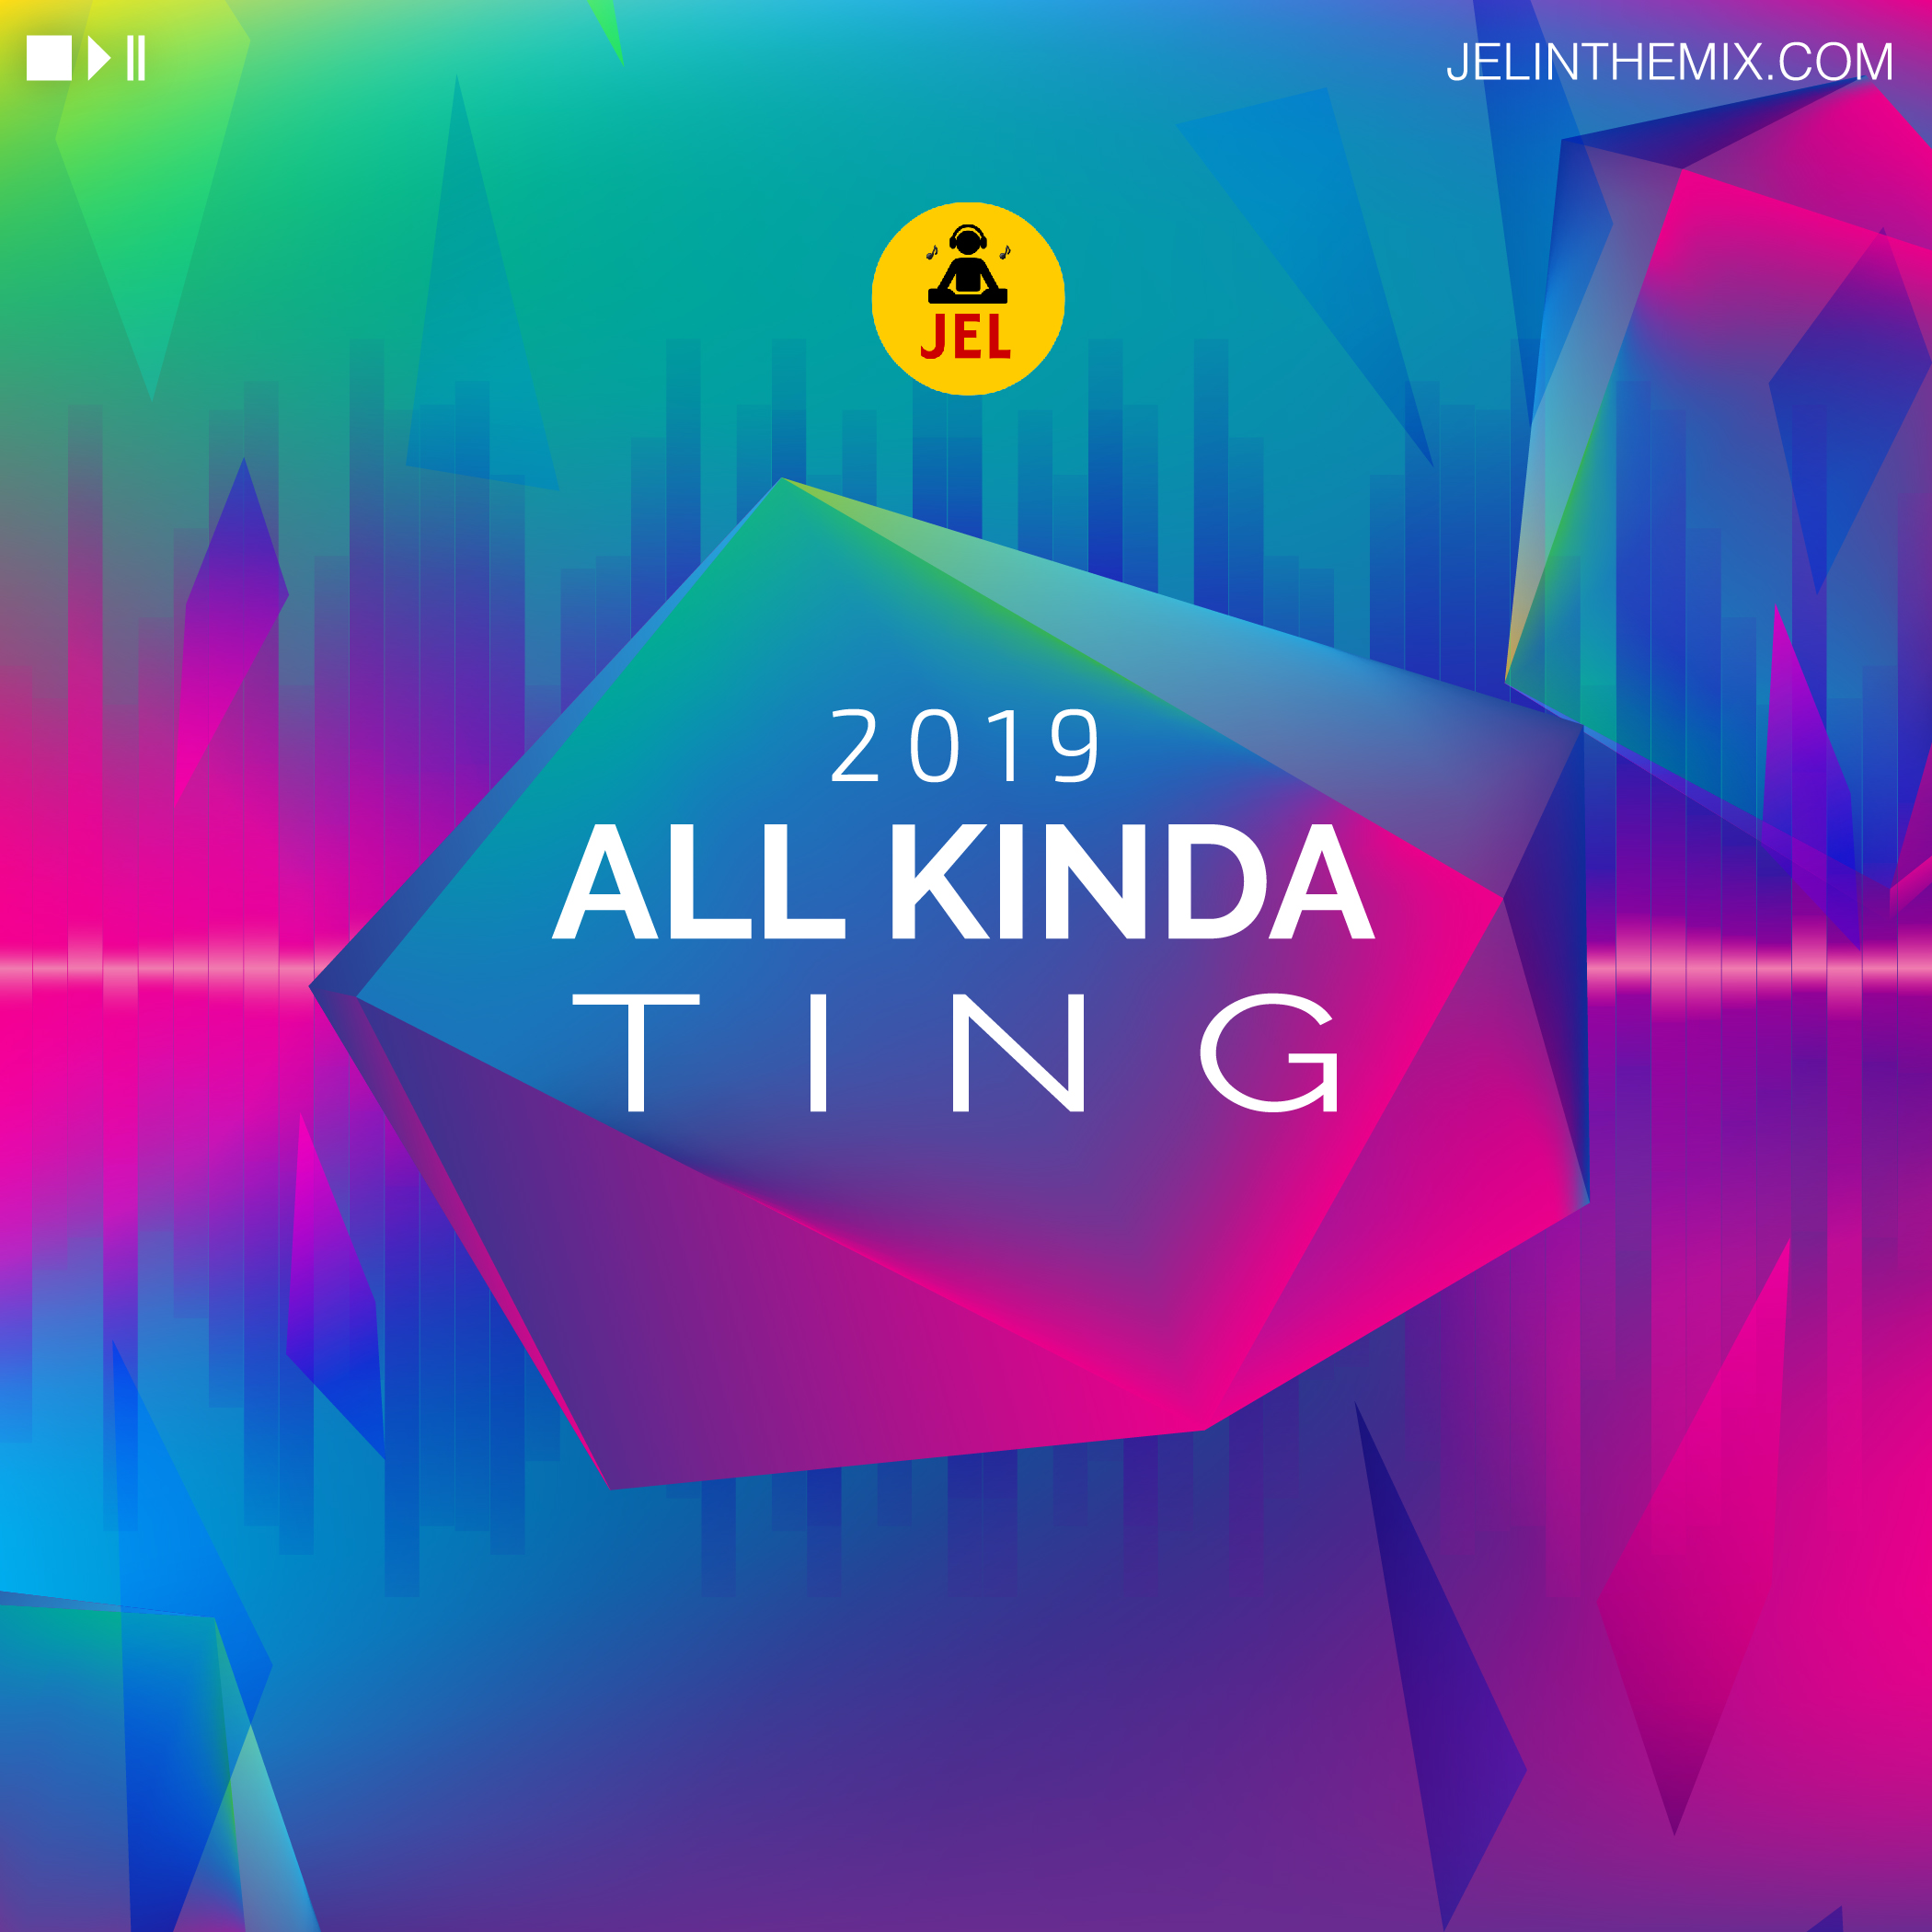 2019 ALL KINDA TING (Multi-genre JEL Birthday Mix)